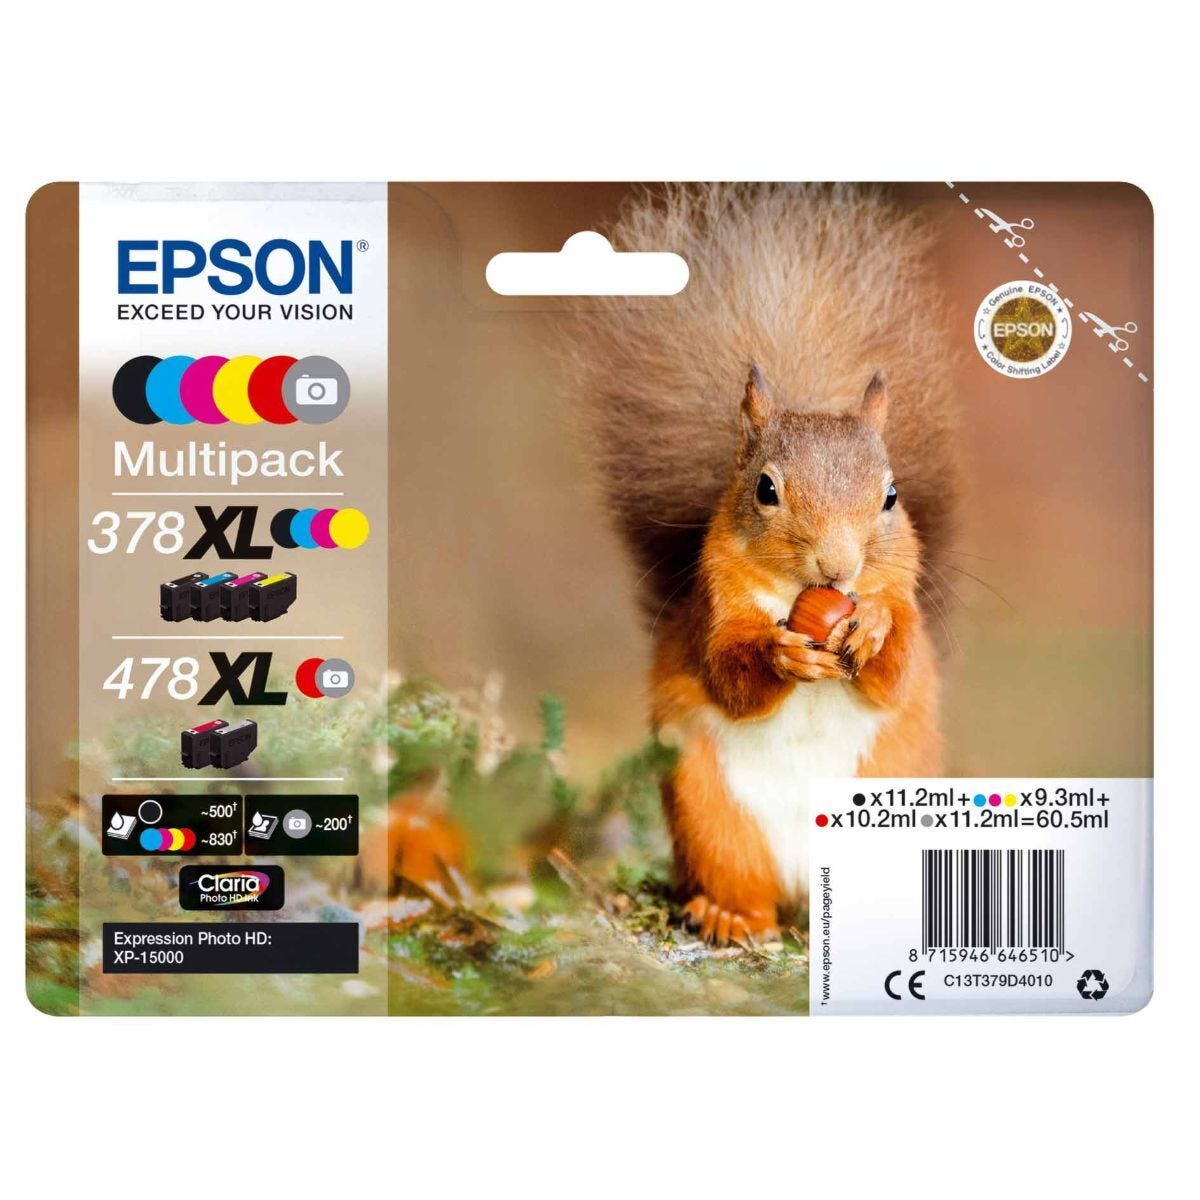 Epson 378XL 478XL 6 Colour Multipack Squirrel Original Ink Cartridge